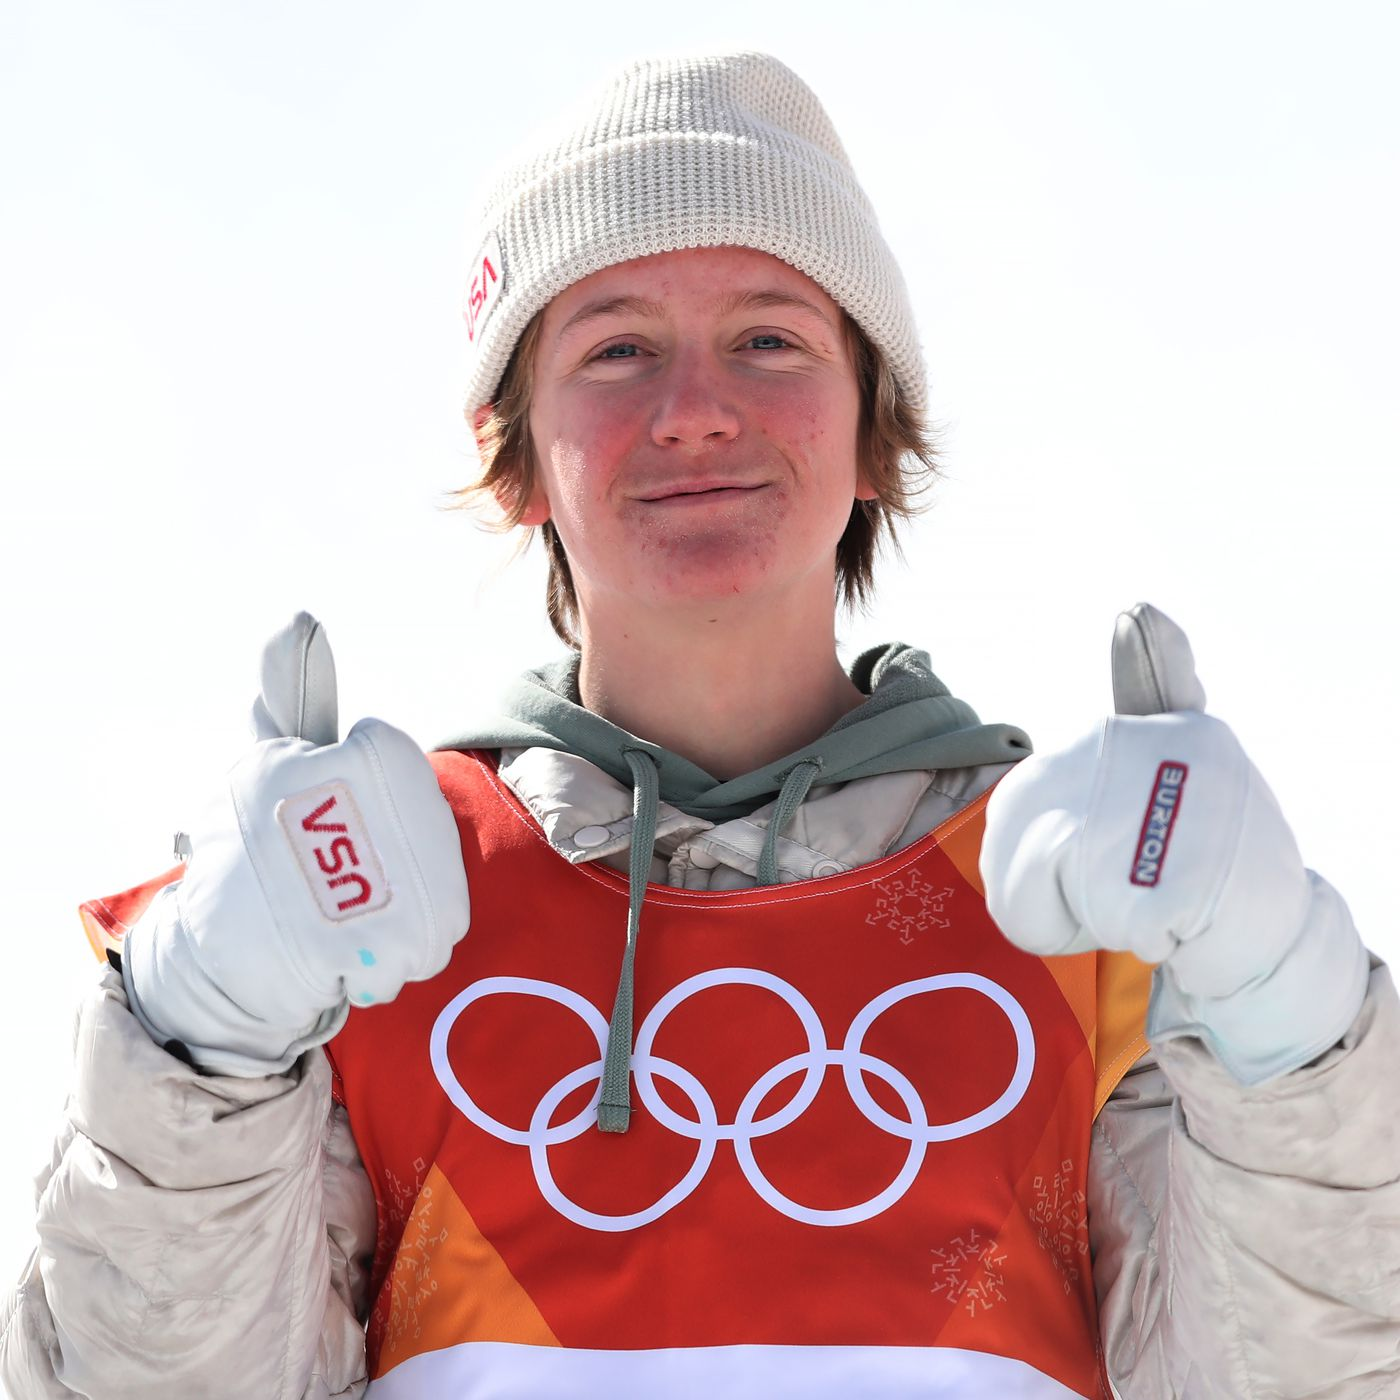 dcfcb75580c Let s meet Red Gerard. He is 17. He won the first U.S. gold medal at the  2018 Olympics.